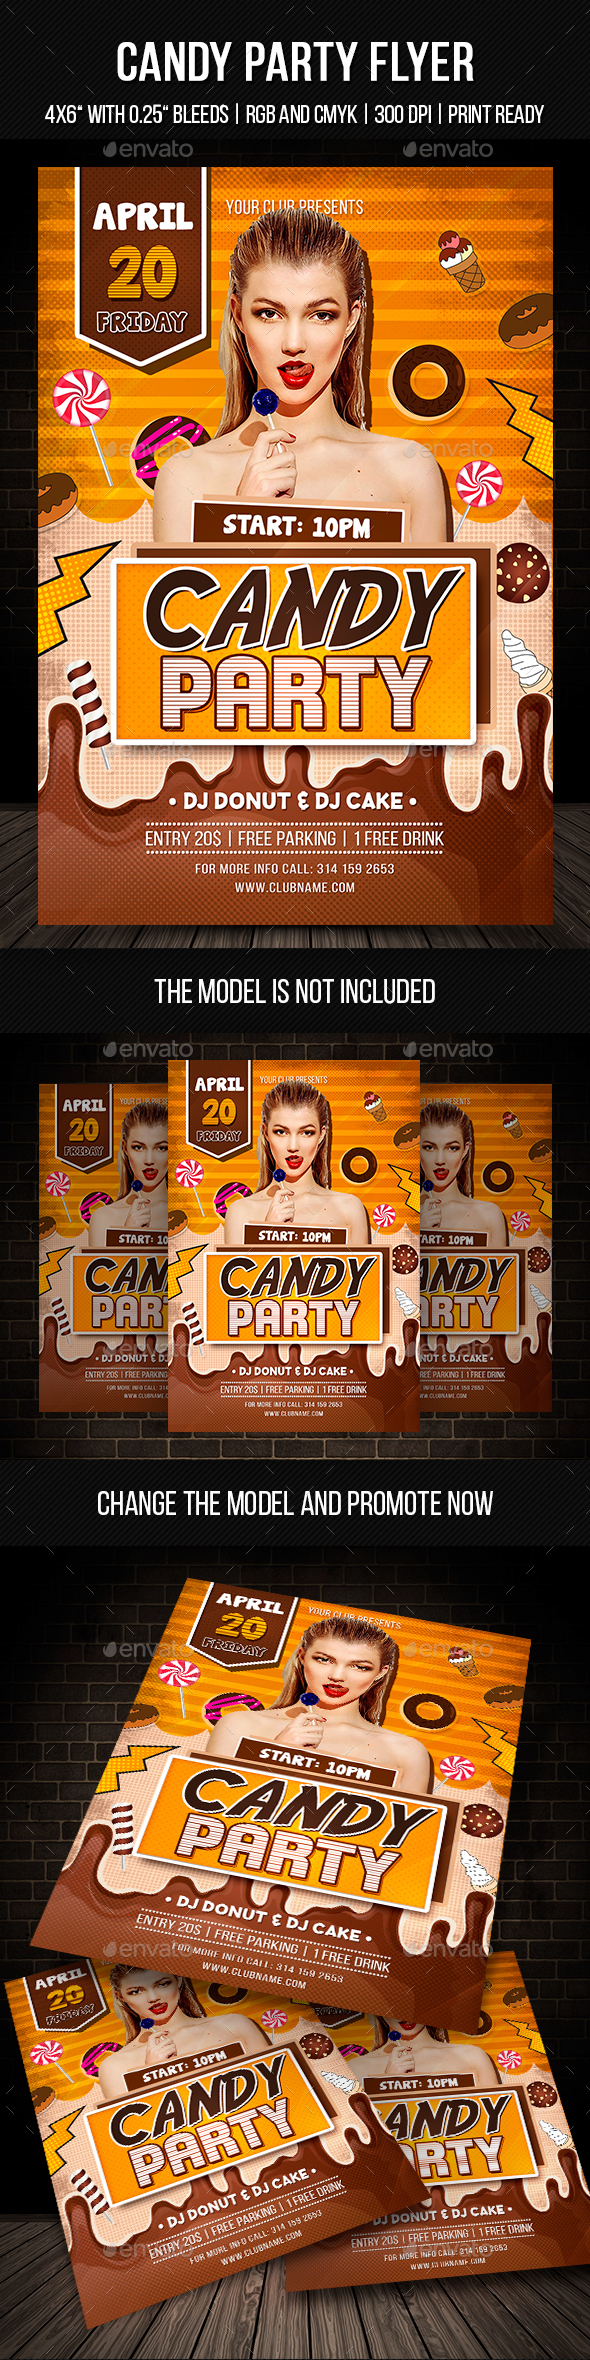 Candy Flyer Graphics, Designs & Templates from GraphicRiver